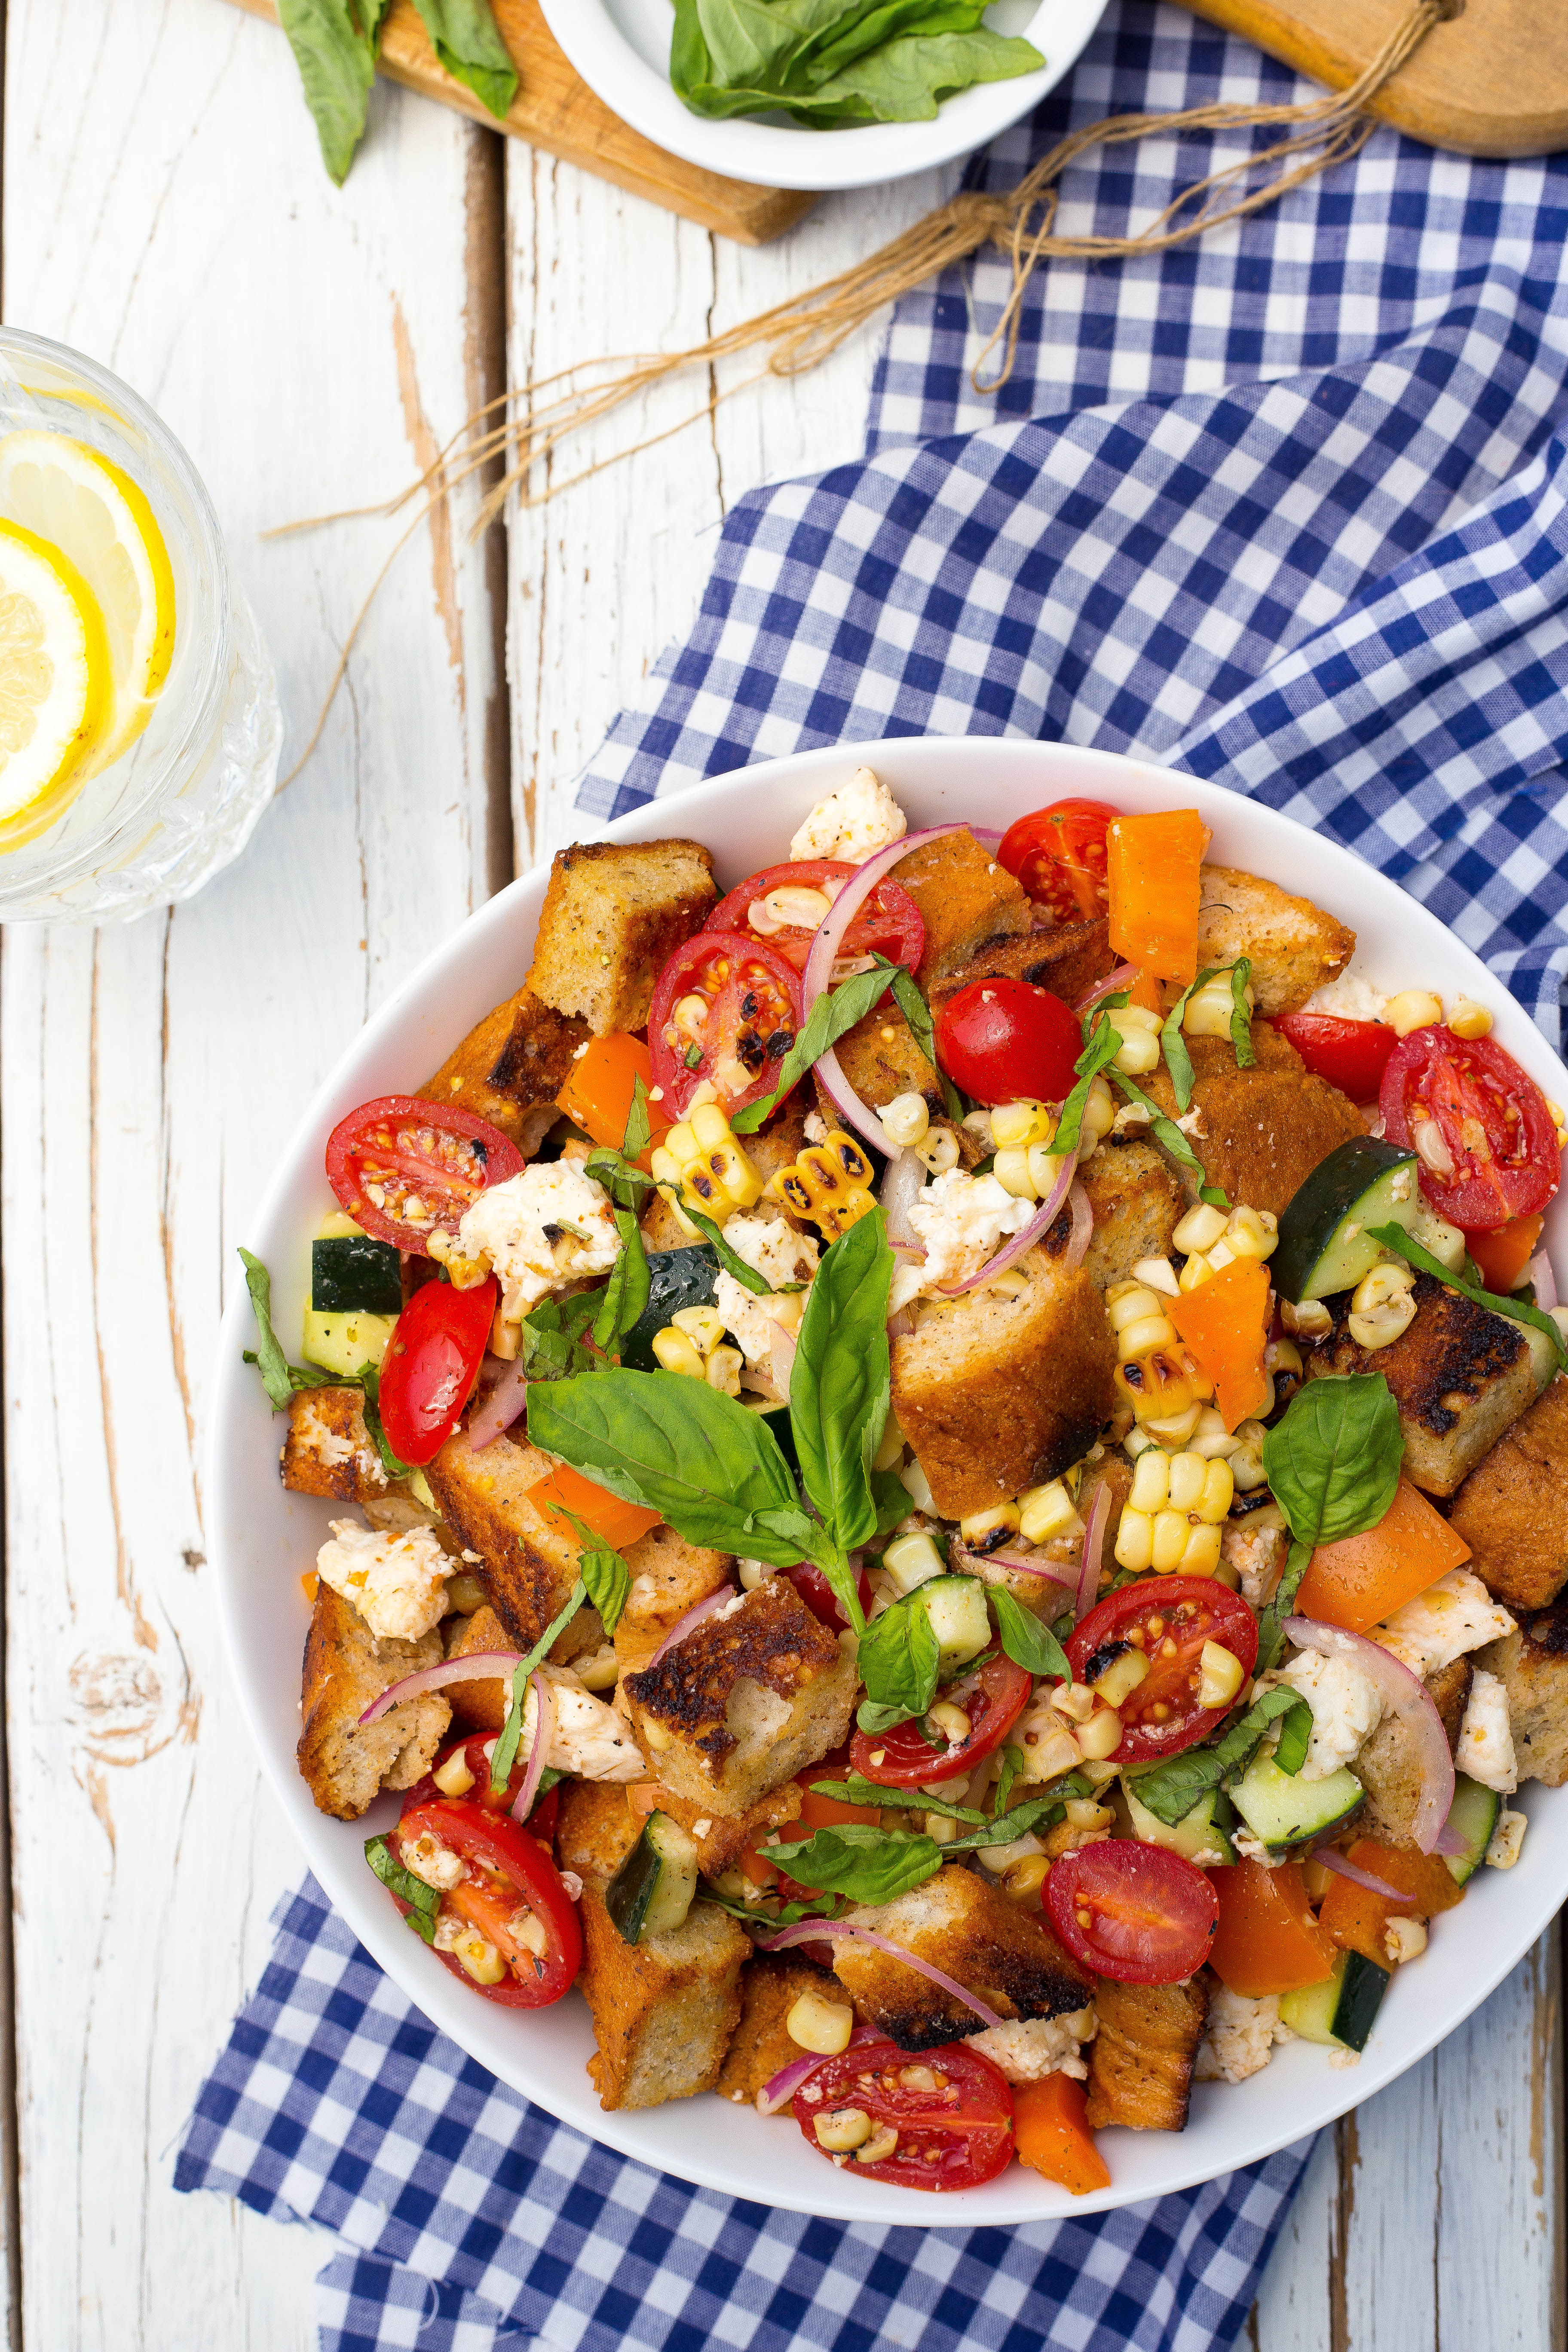 Summer Panzanella Salad with Grilled Corn - She Likes Food